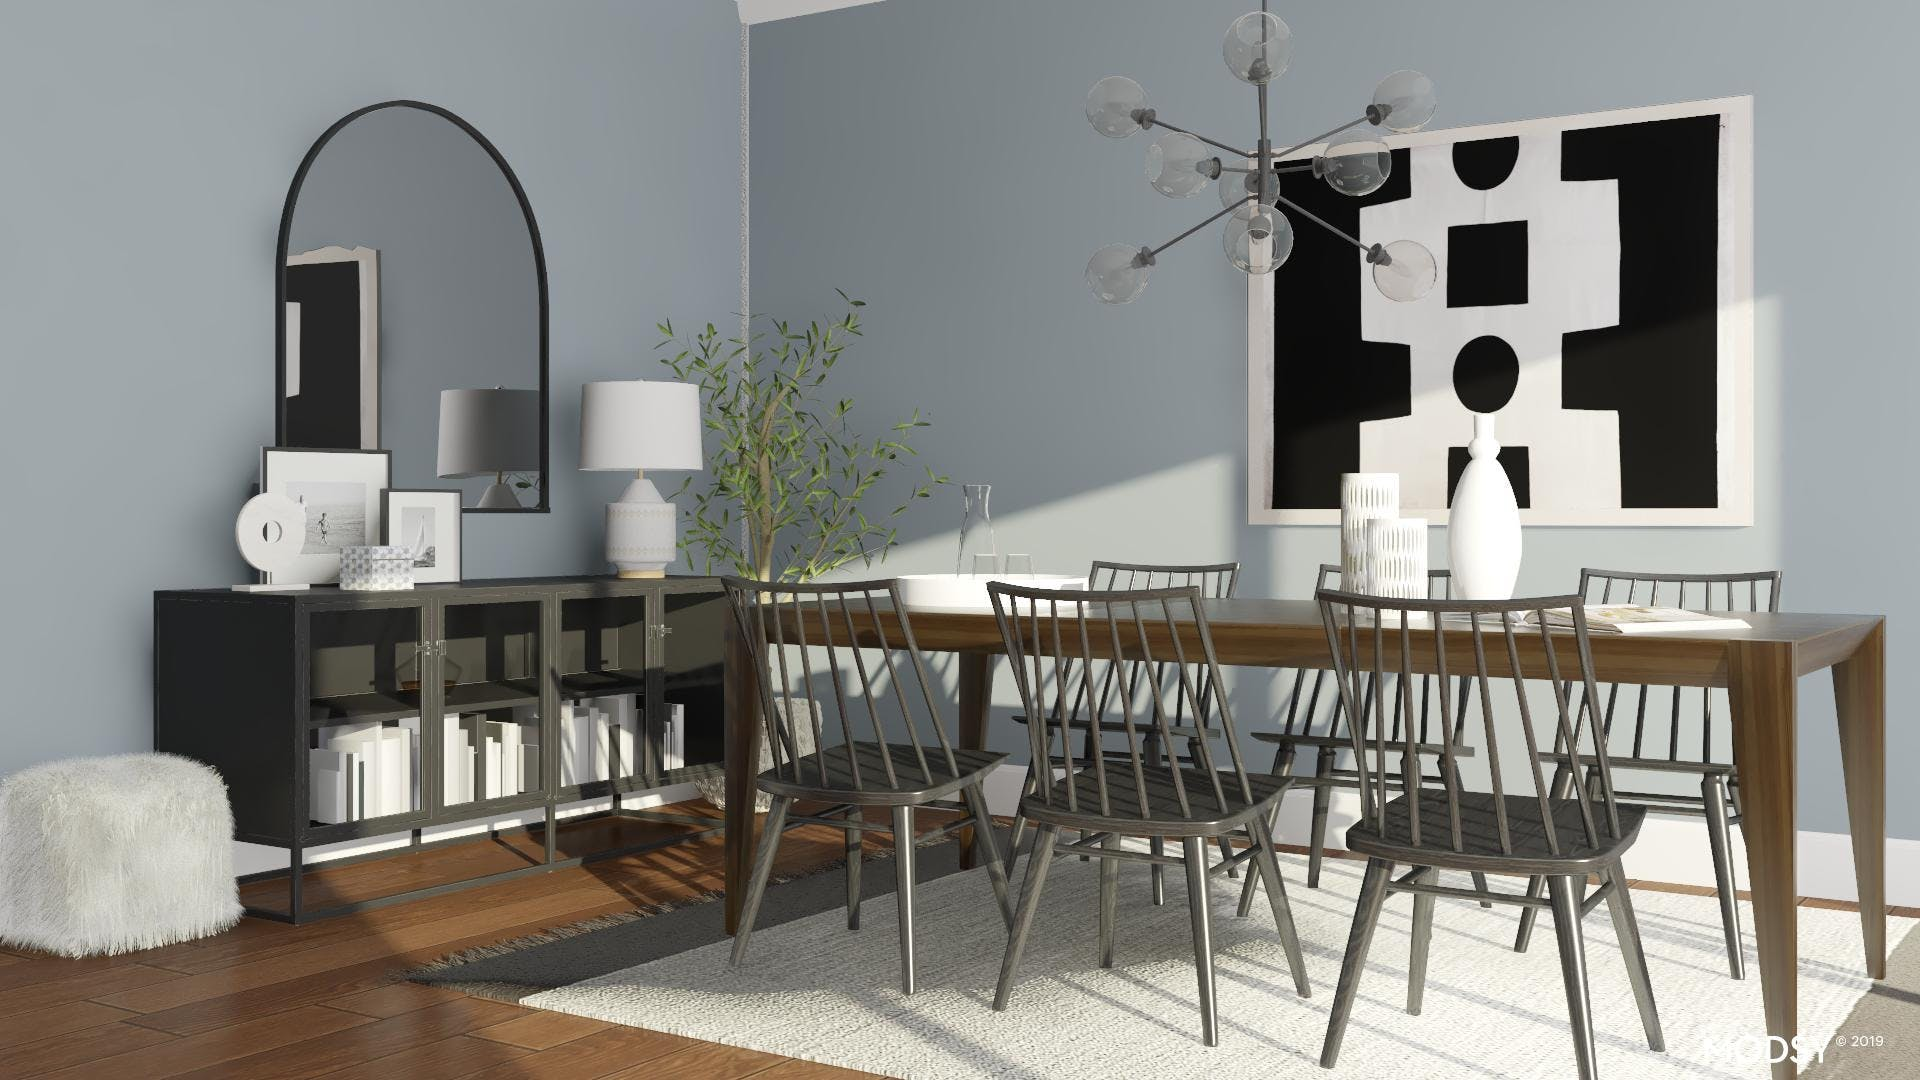 Kid Friendly Dining Room With Monochrome Colors